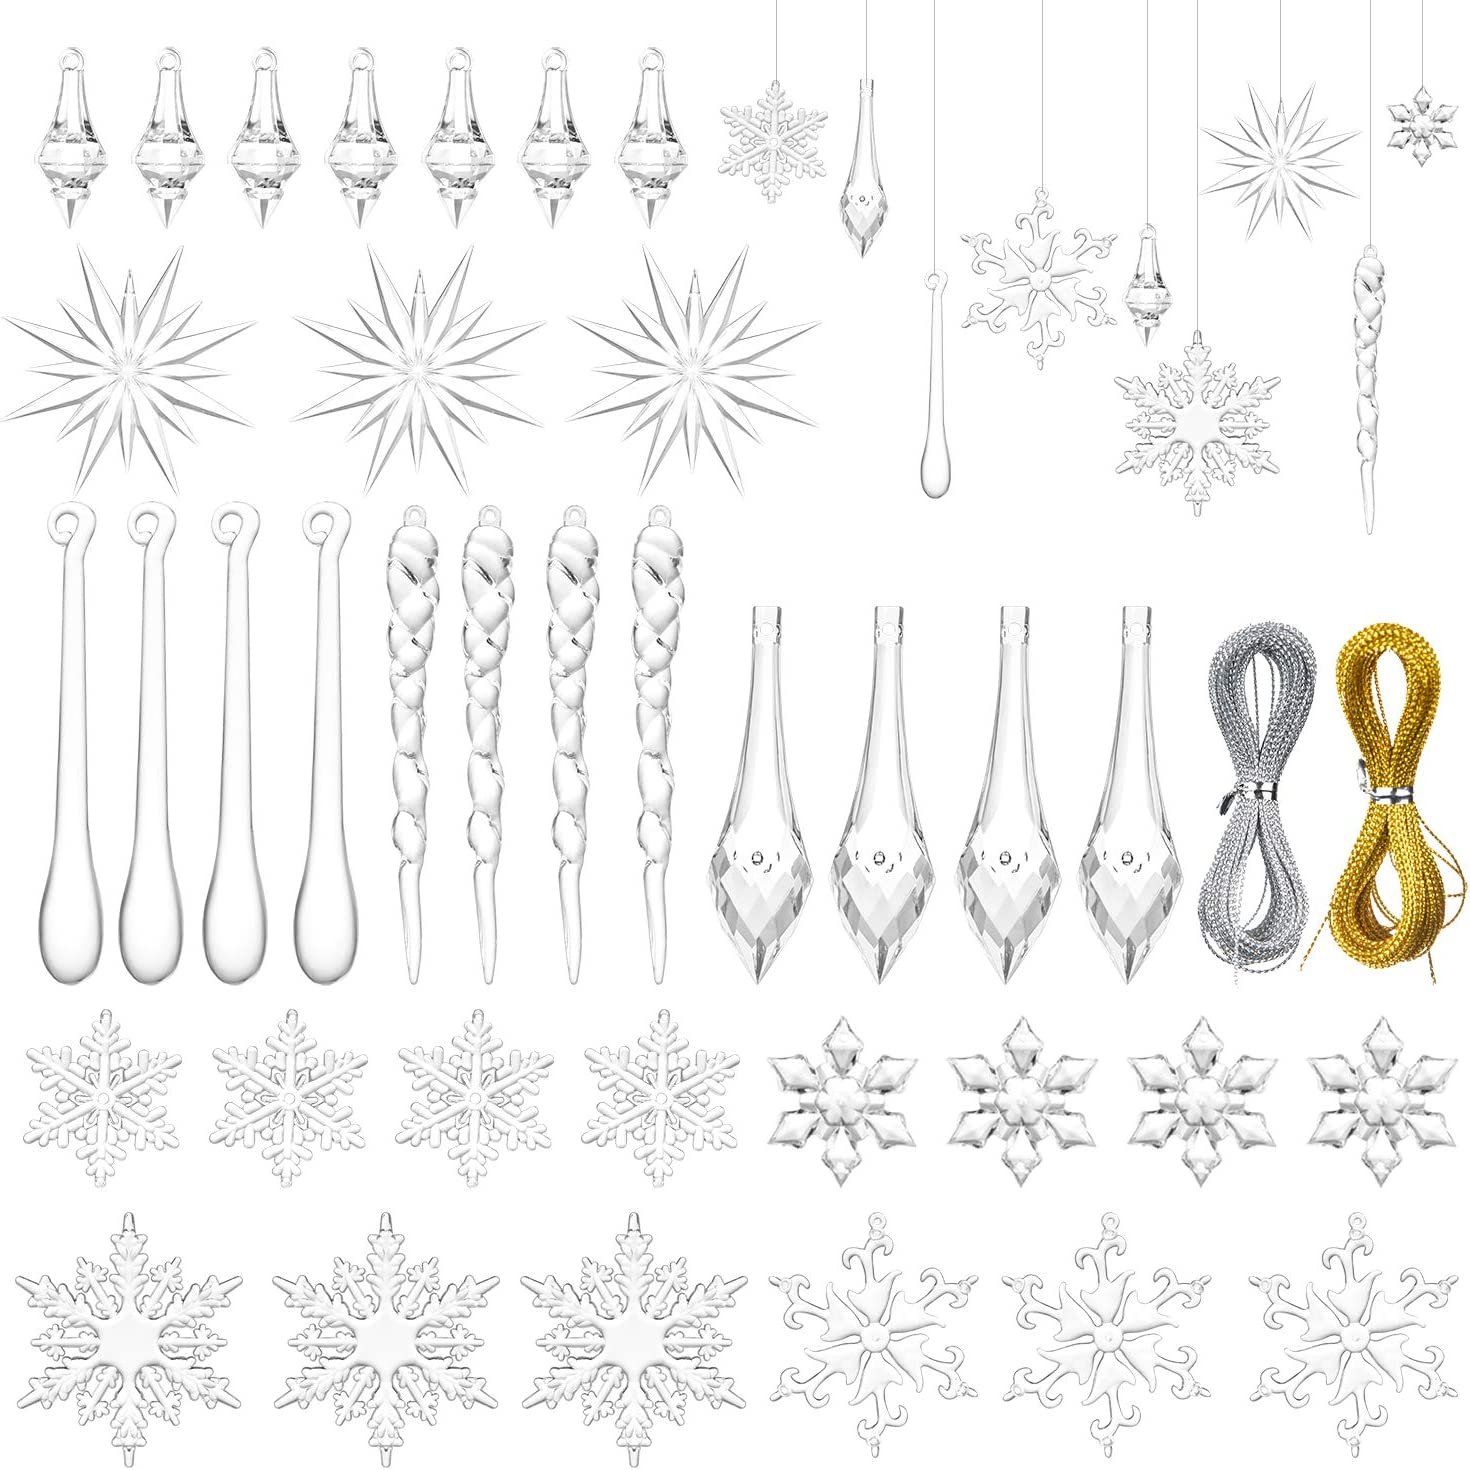 Artiflr Christmas Snowflake Decorations 59 Pcs Icicles Ornaments Set Clear Snowflake Acrylic Christmas Ornaments For Santa Outdoor Party Decoration Craft Projects Home Kitchen